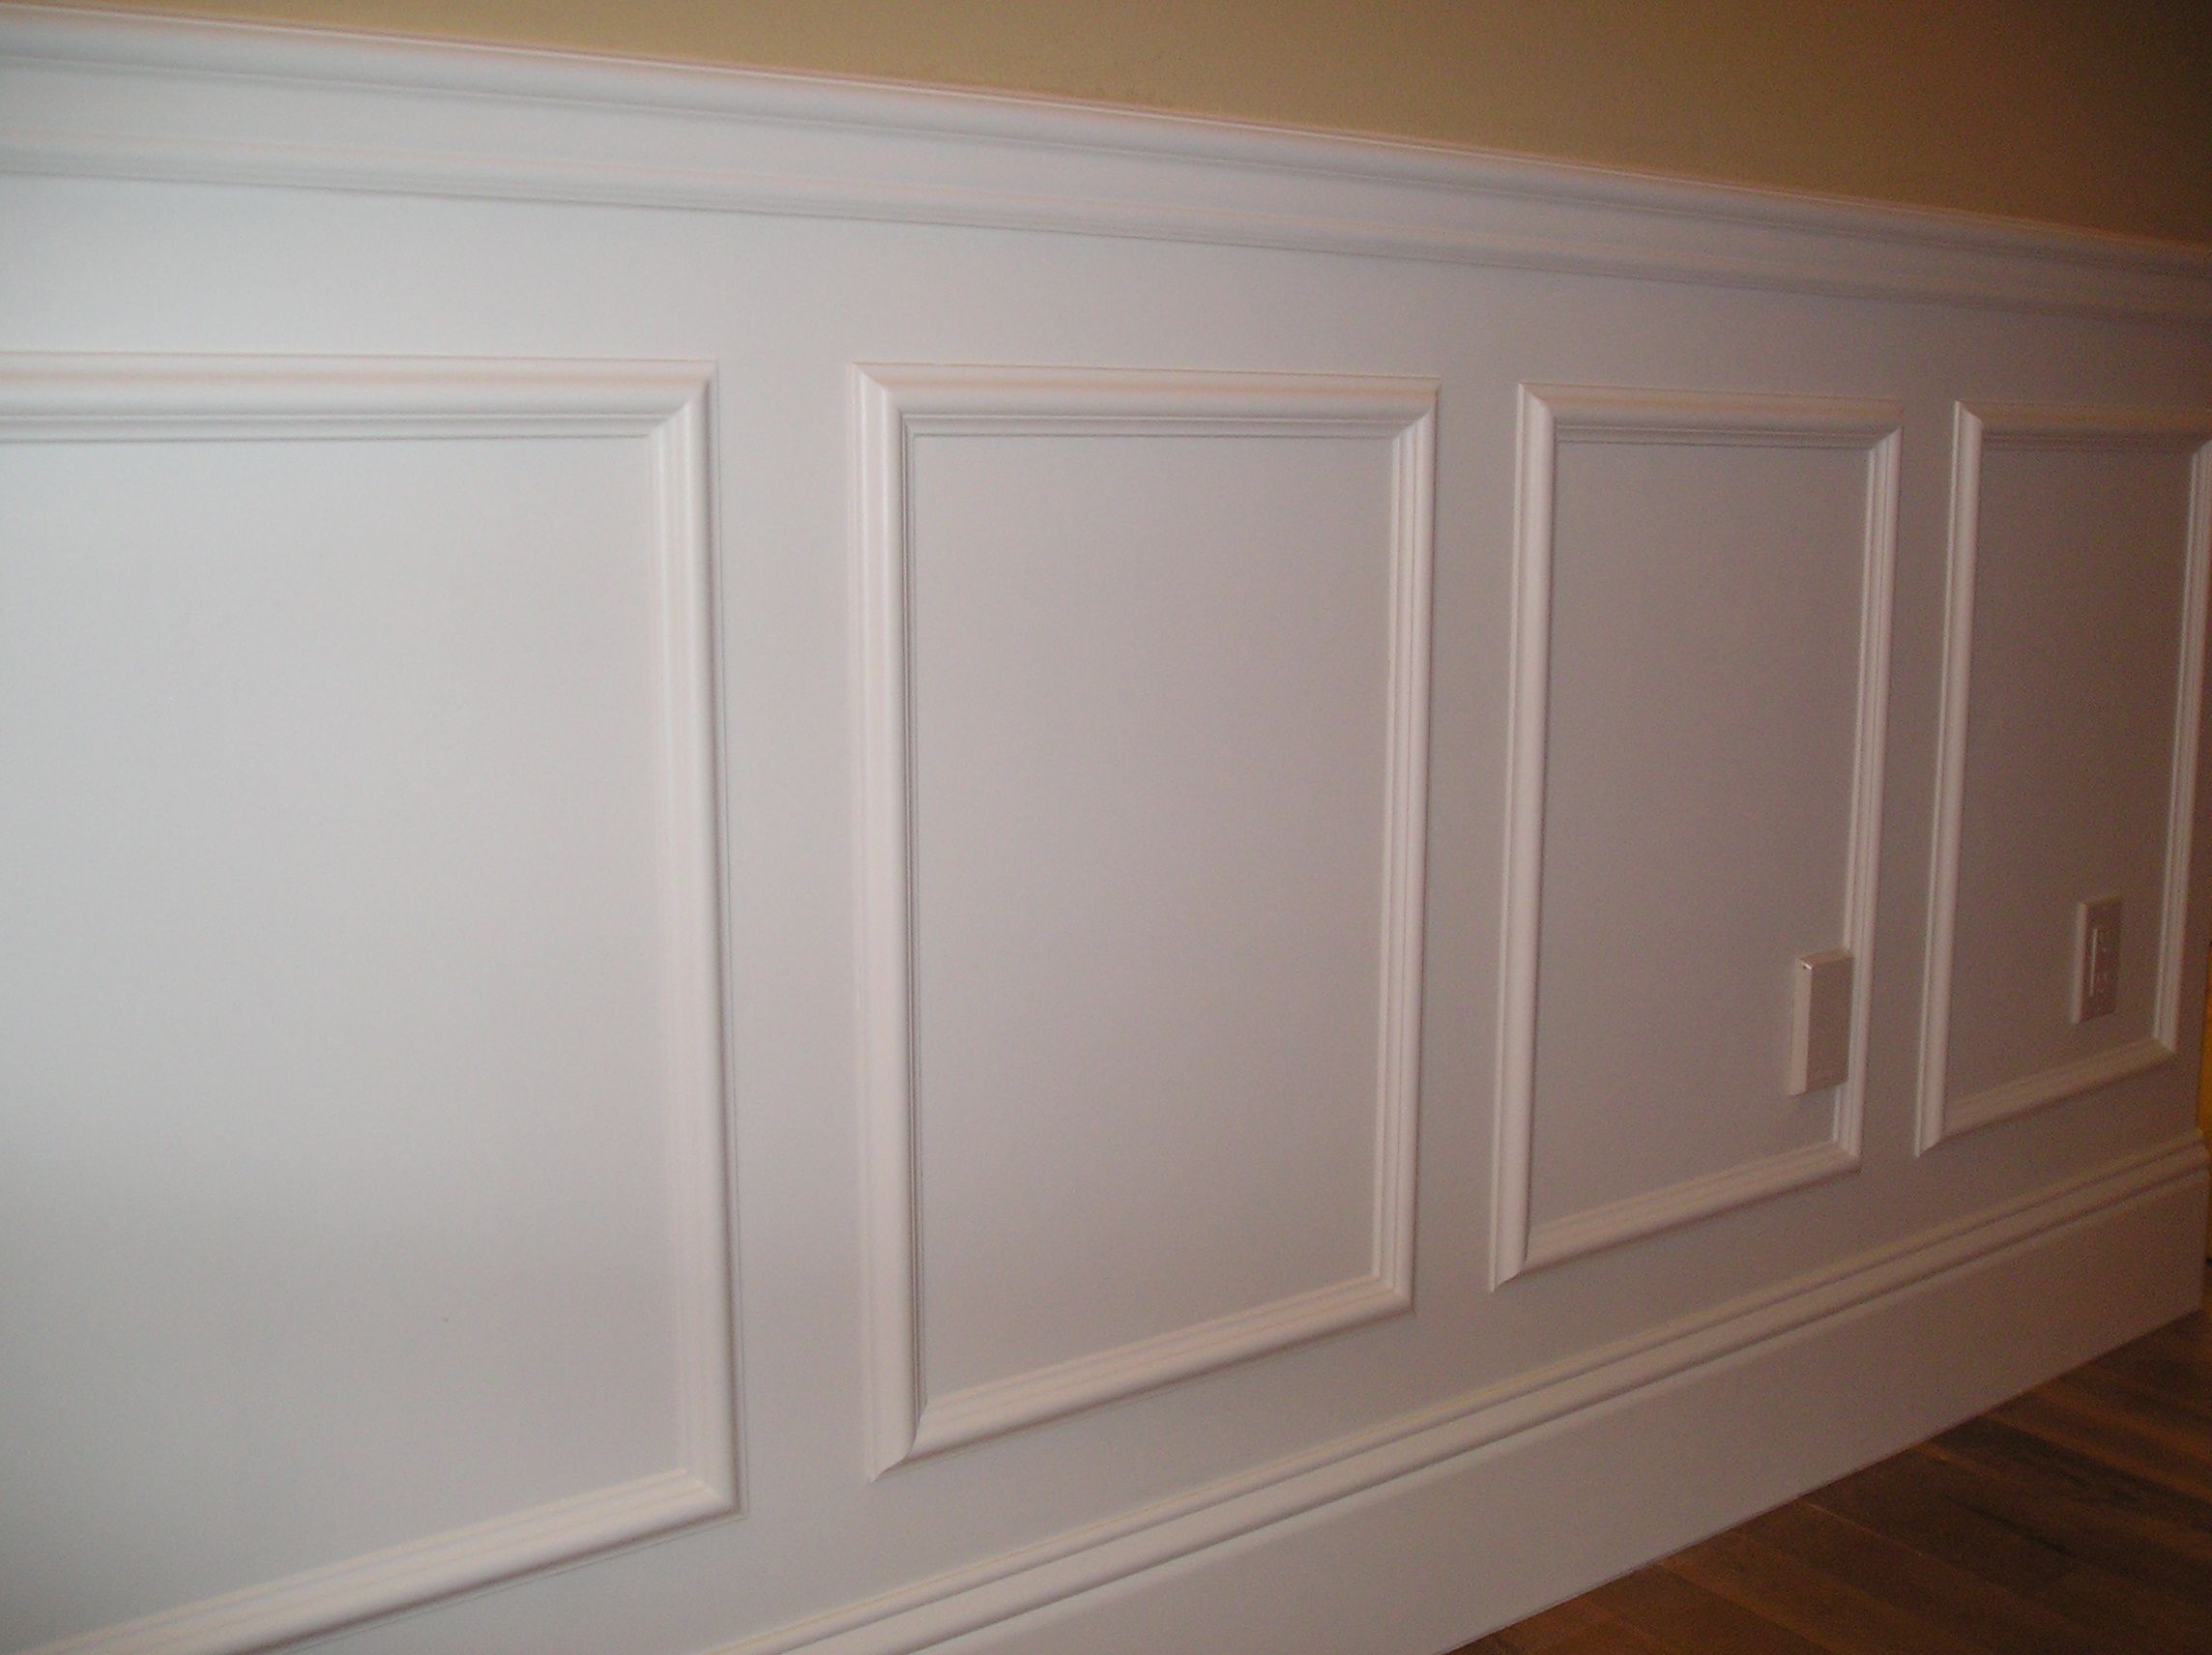 Chair Rail Designs A Simple Way To Create A Raised Panel Look In Your Room